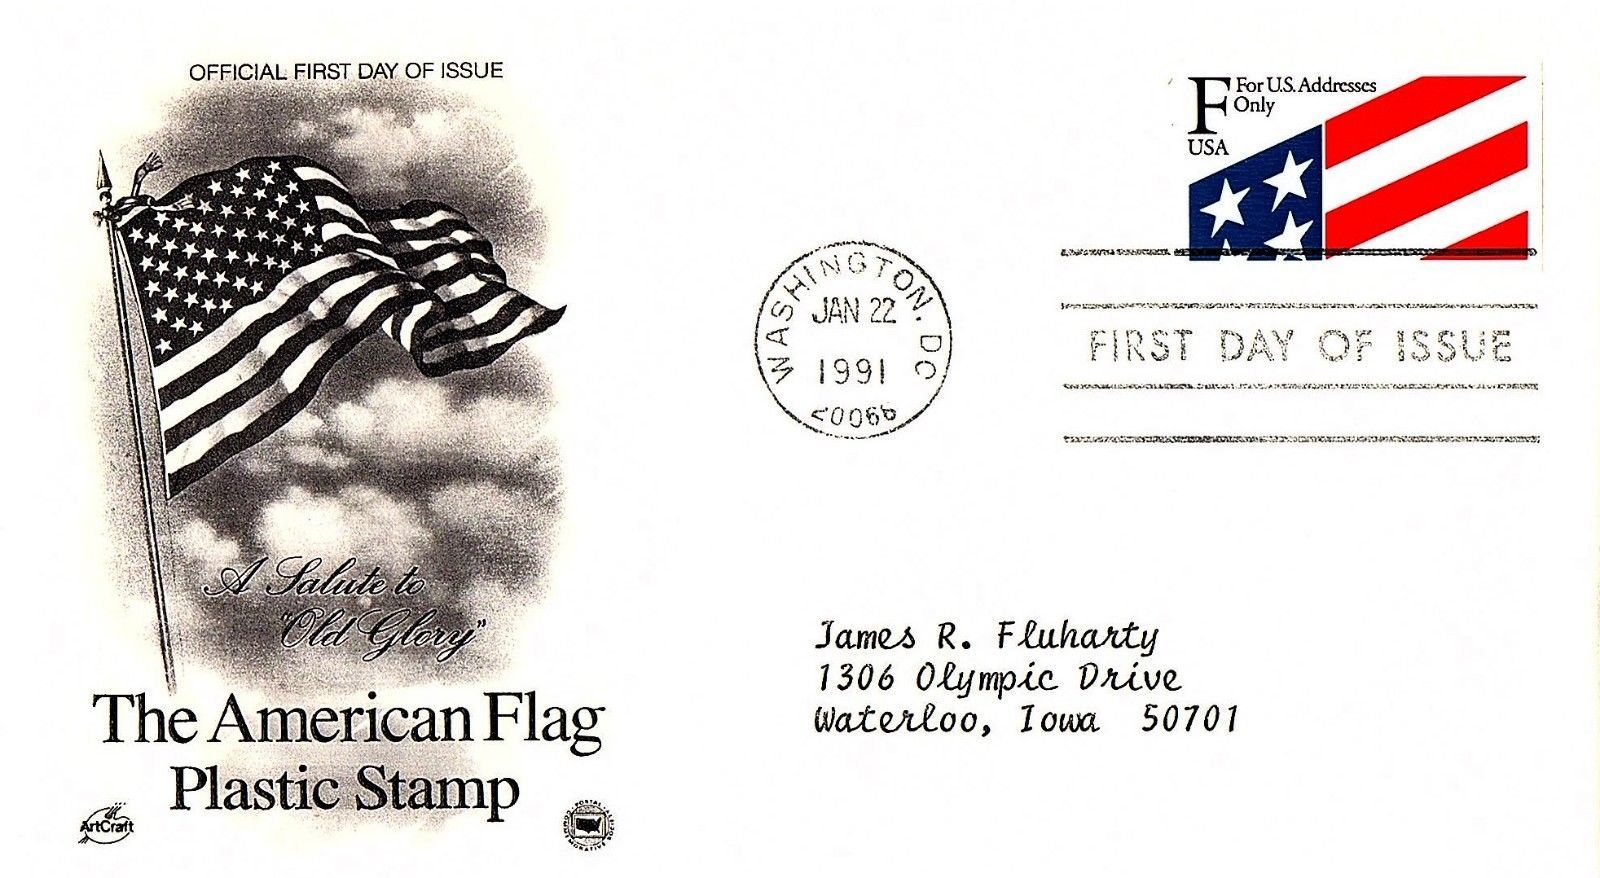 January 22, 1991 First Day of Issue, Postal Society Cover, Flag Plastic Stamp